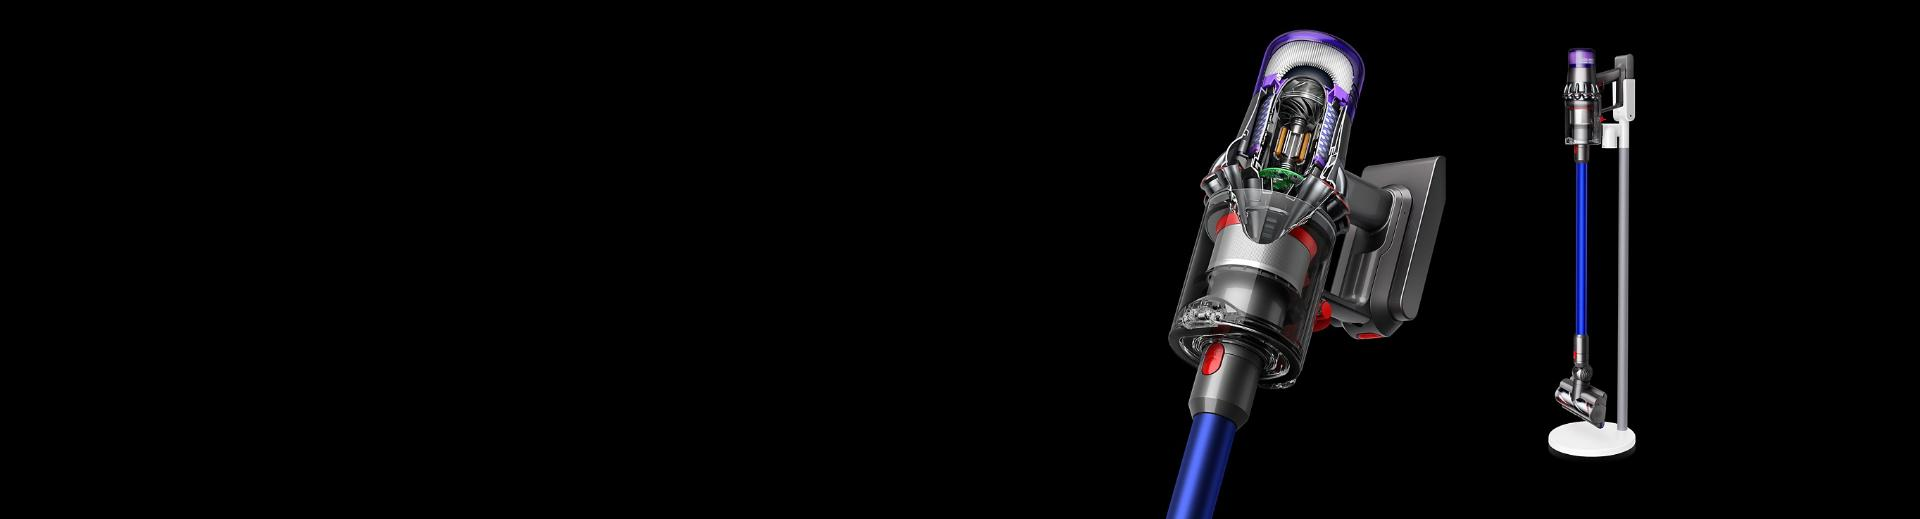 exchange offer on V11 Dyson cordfree vacuum cleaners